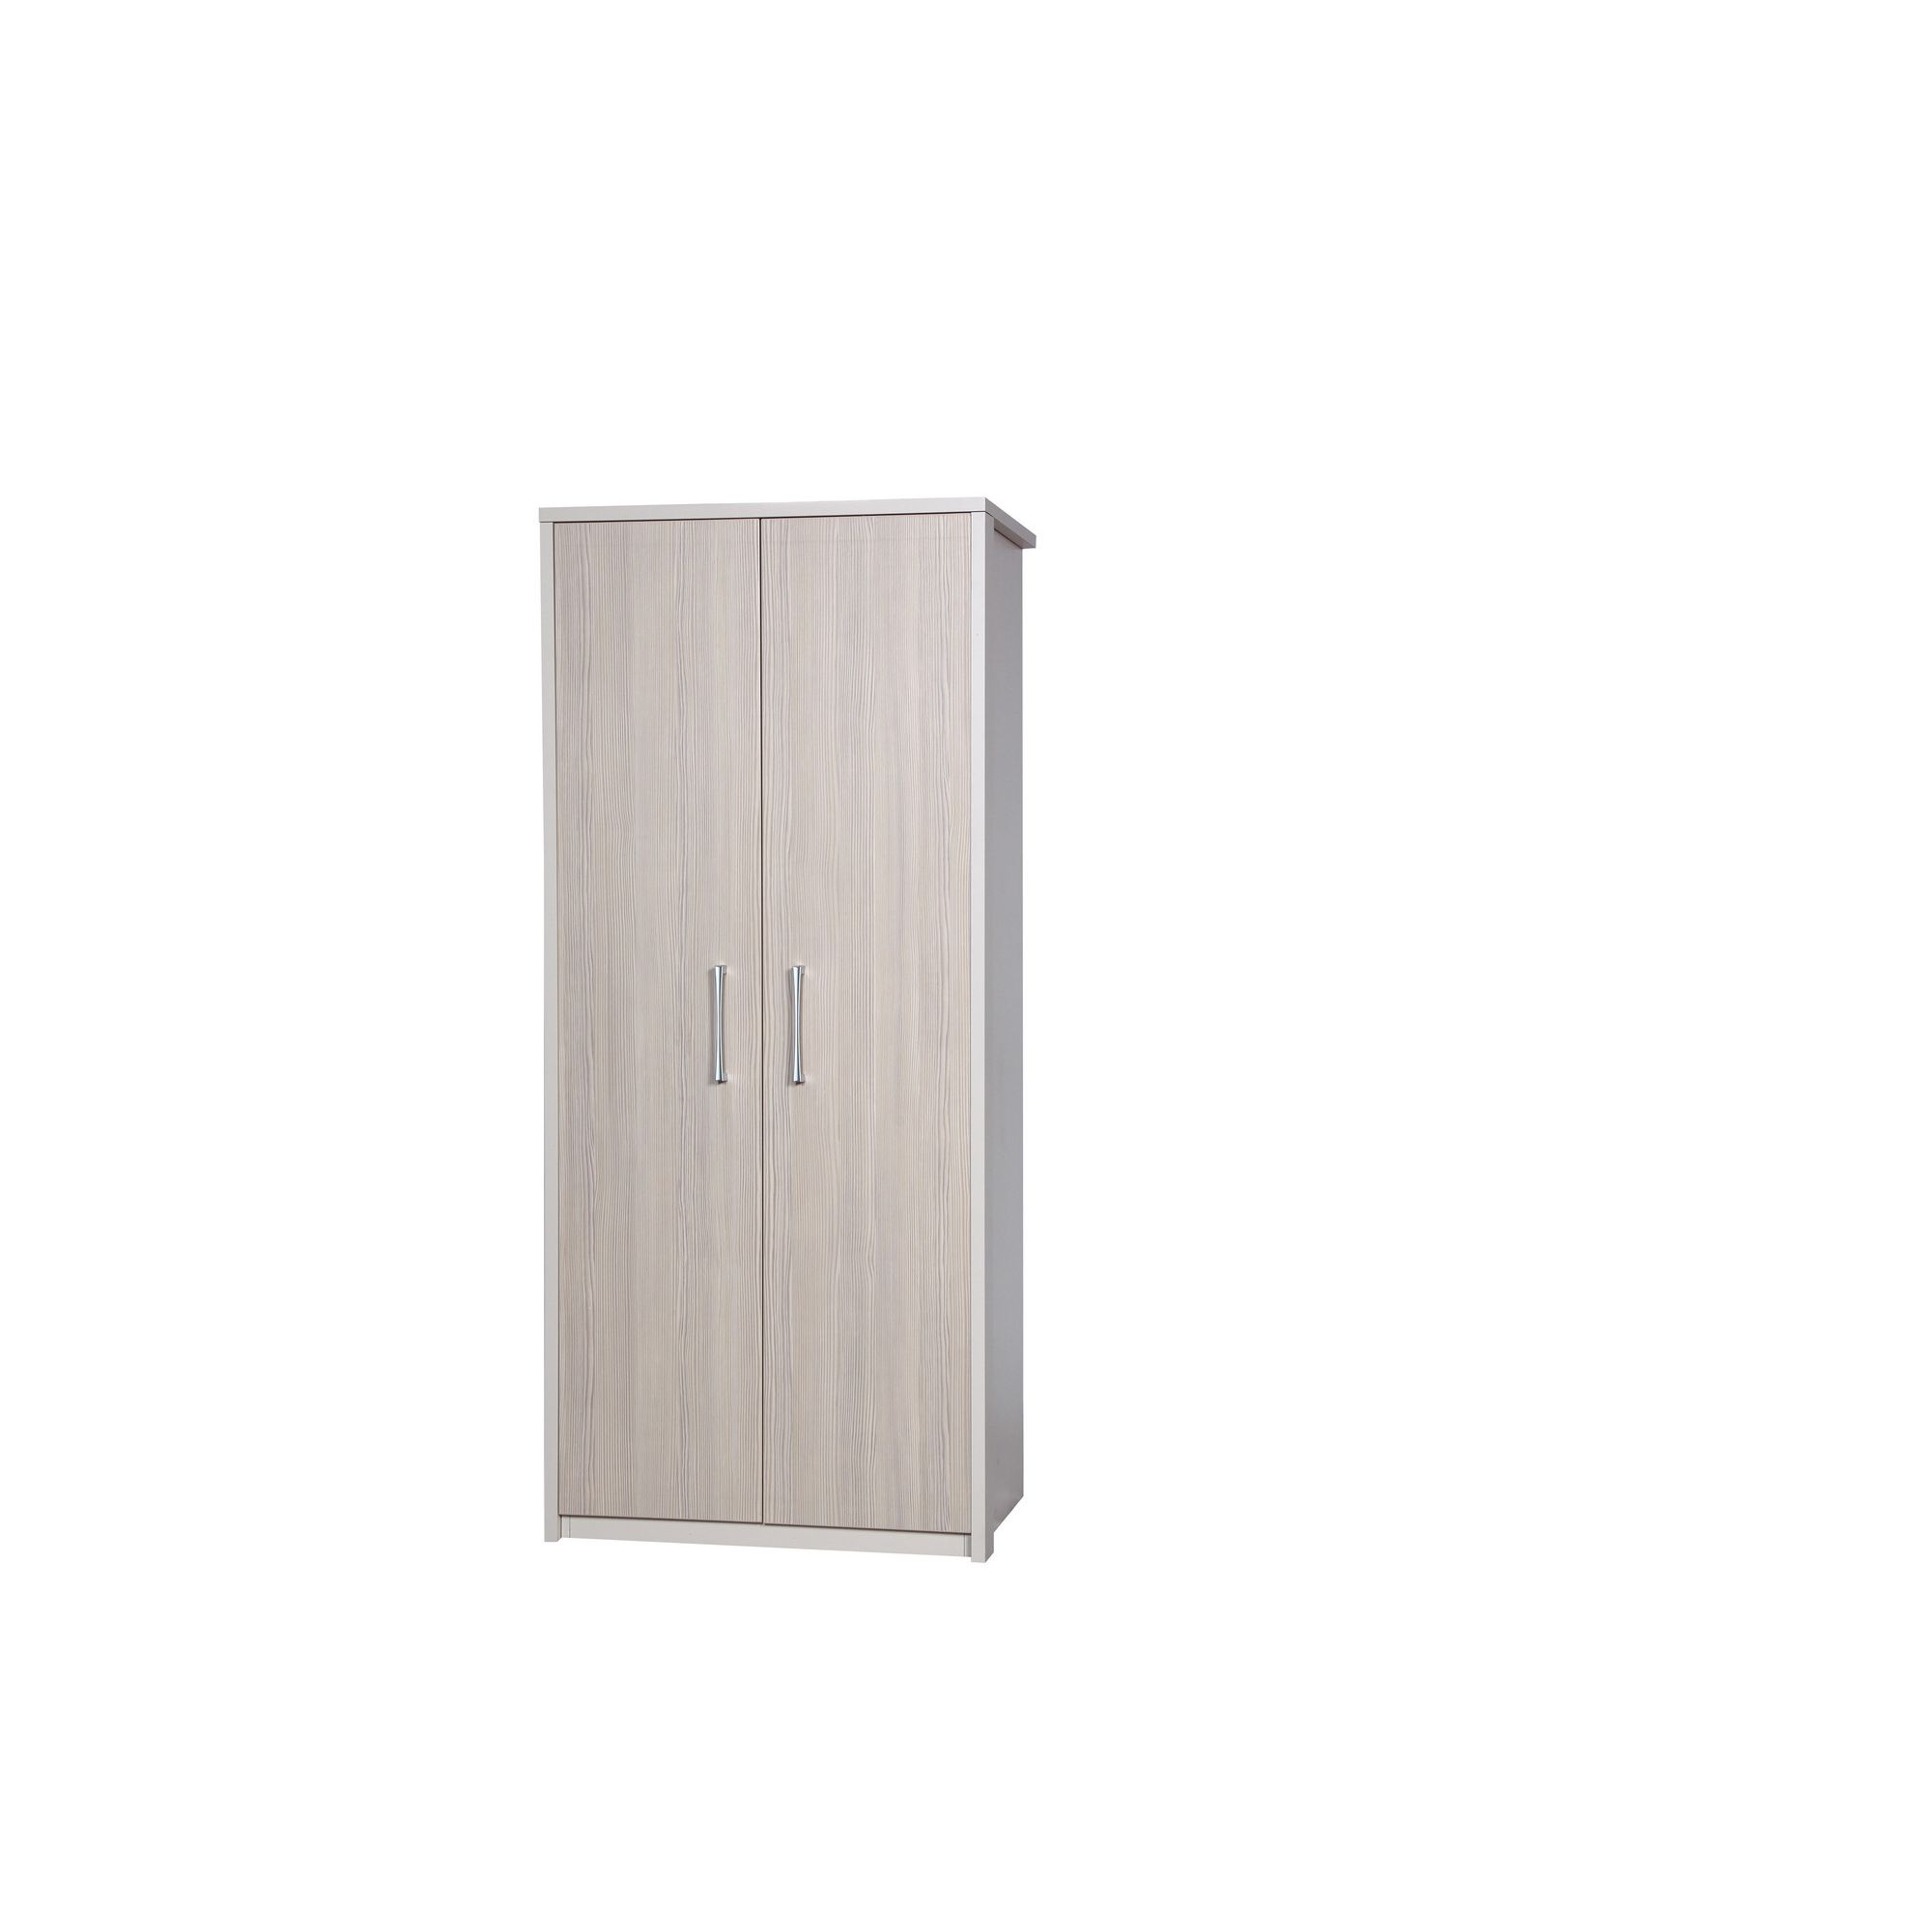 Alto Furniture Avola Double Wardrobe - Cream Carcass With Champagne Avola at Tesco Direct